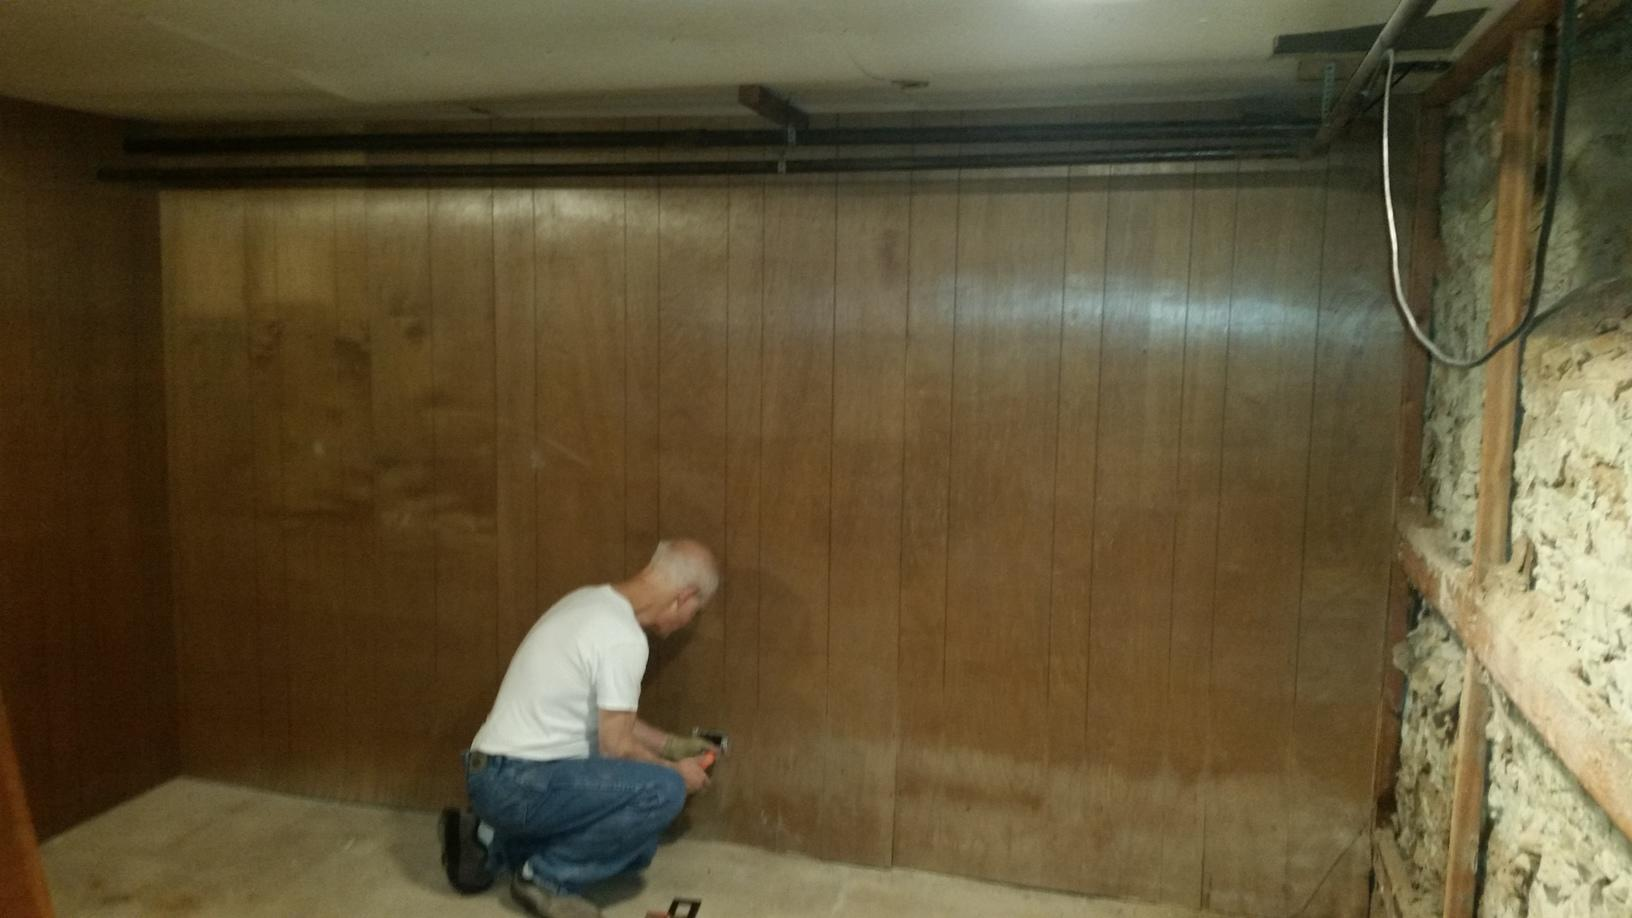 Warping and mold growth are highly noticeable to the wood paneling from moisture.